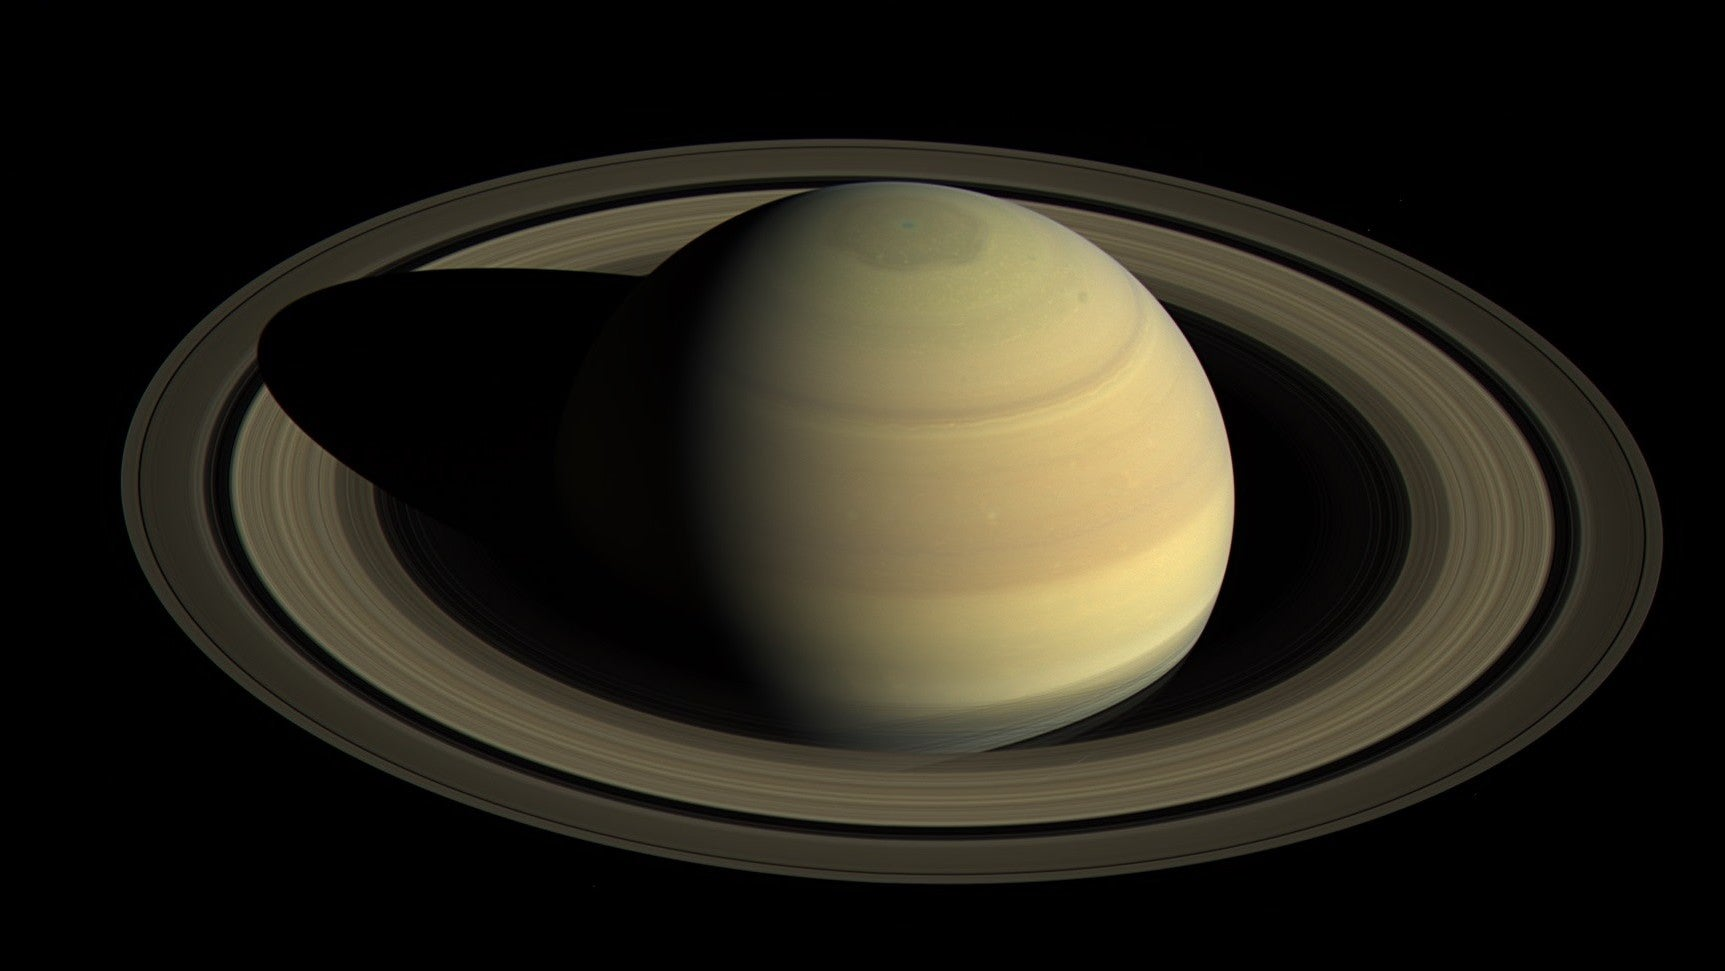 Whoa, Astronomers Just Found 20 New Moons Around Saturn